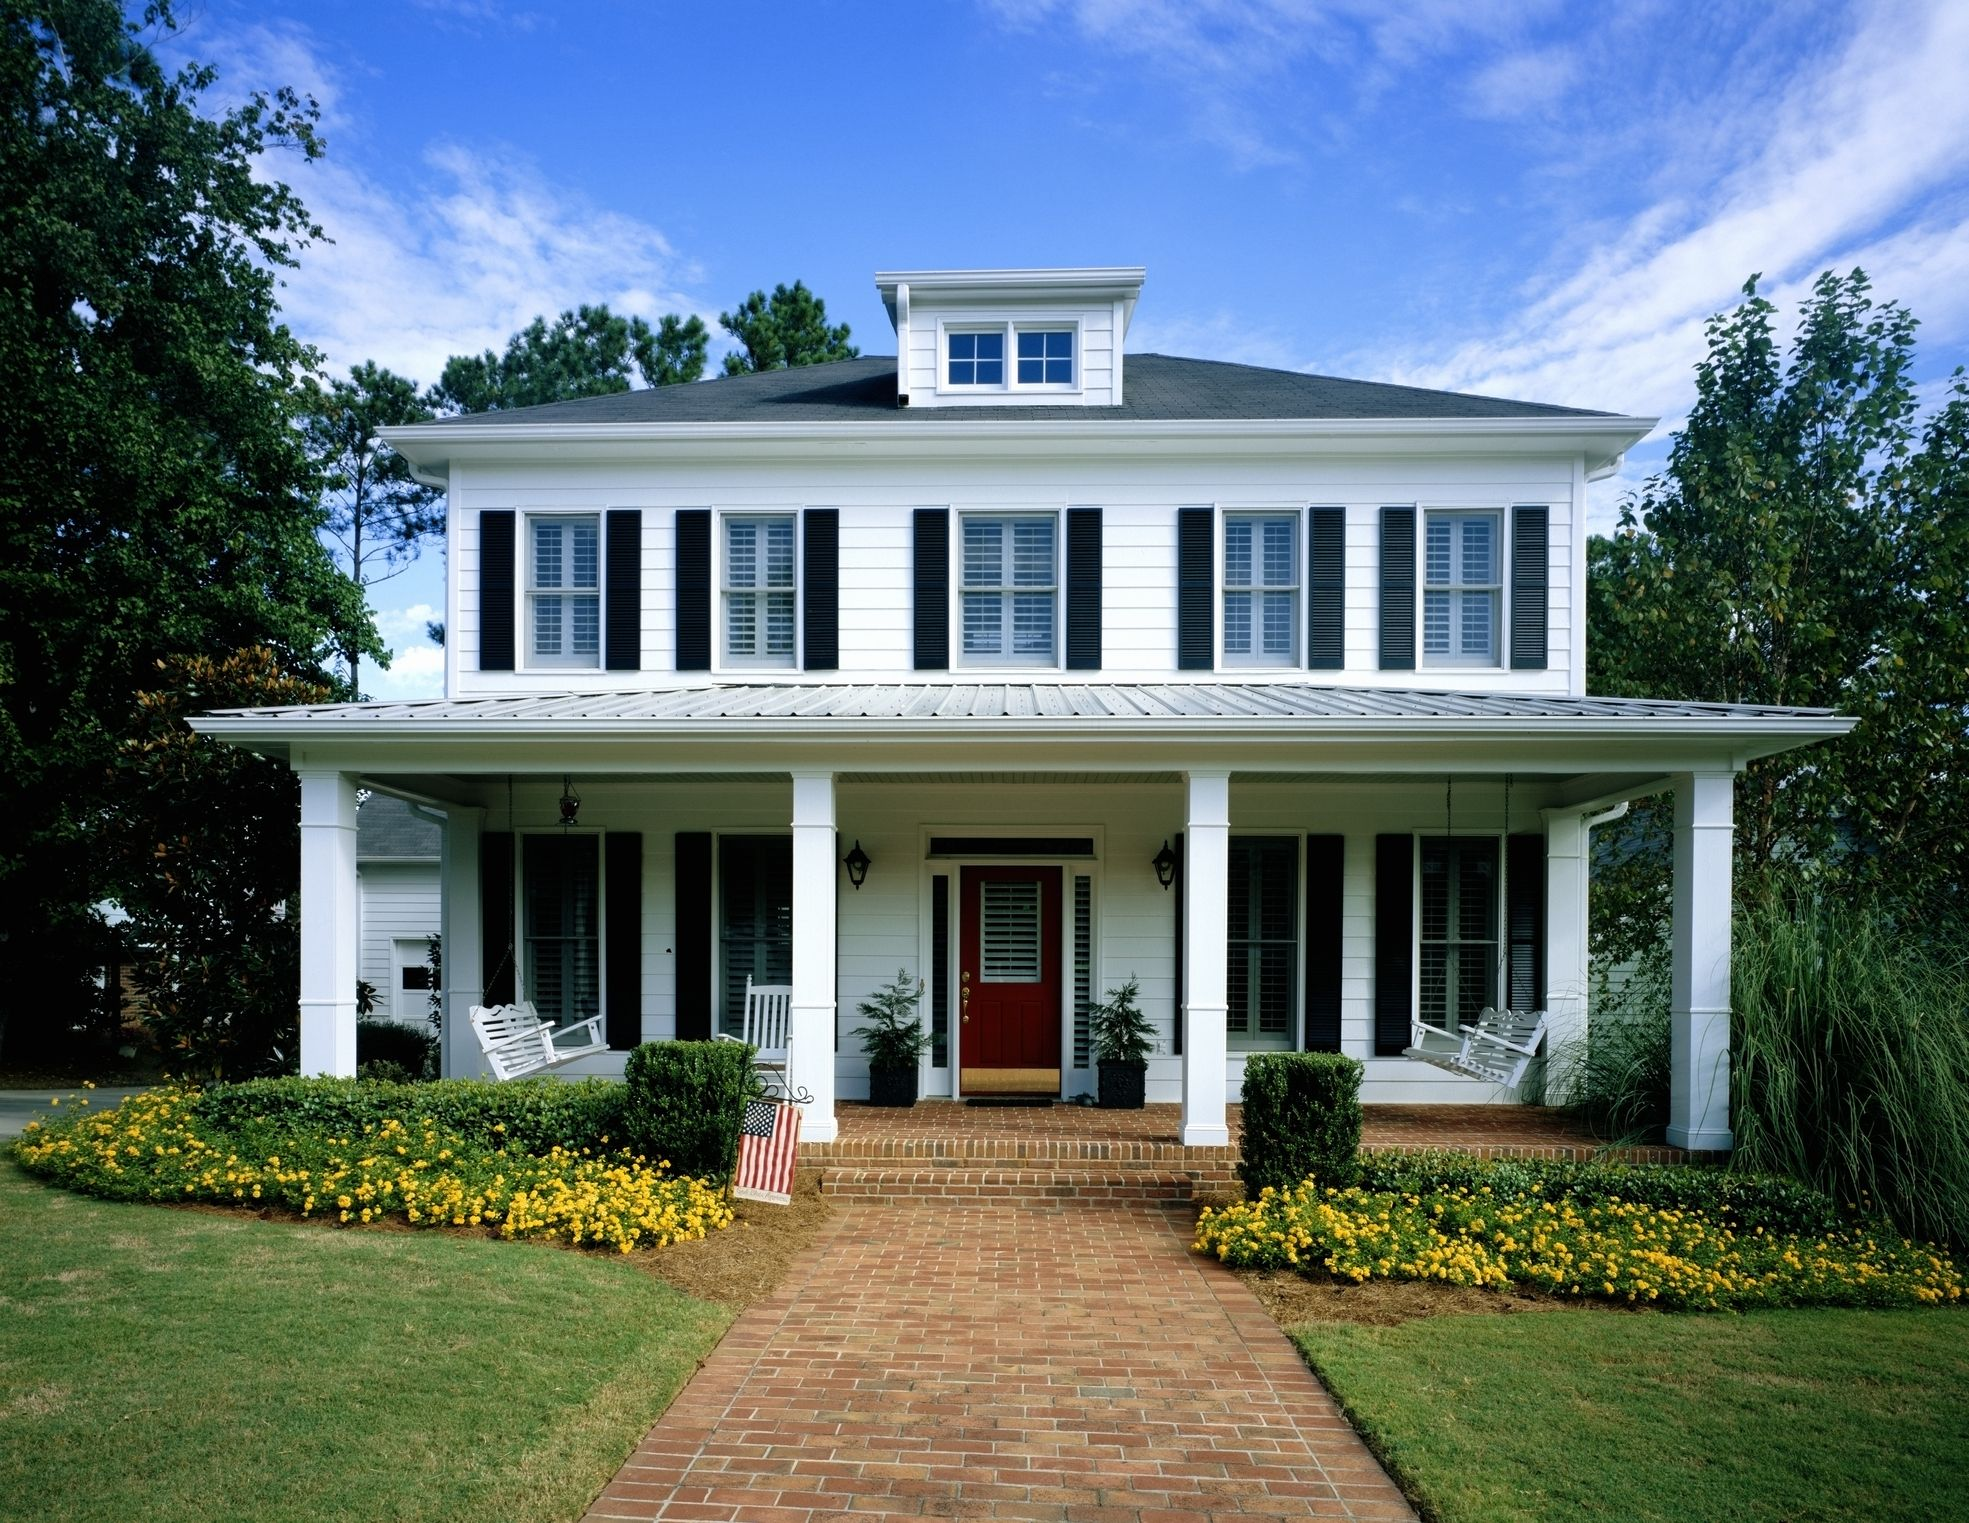 The Paint Color That Can Increase A Homeu0027s Value